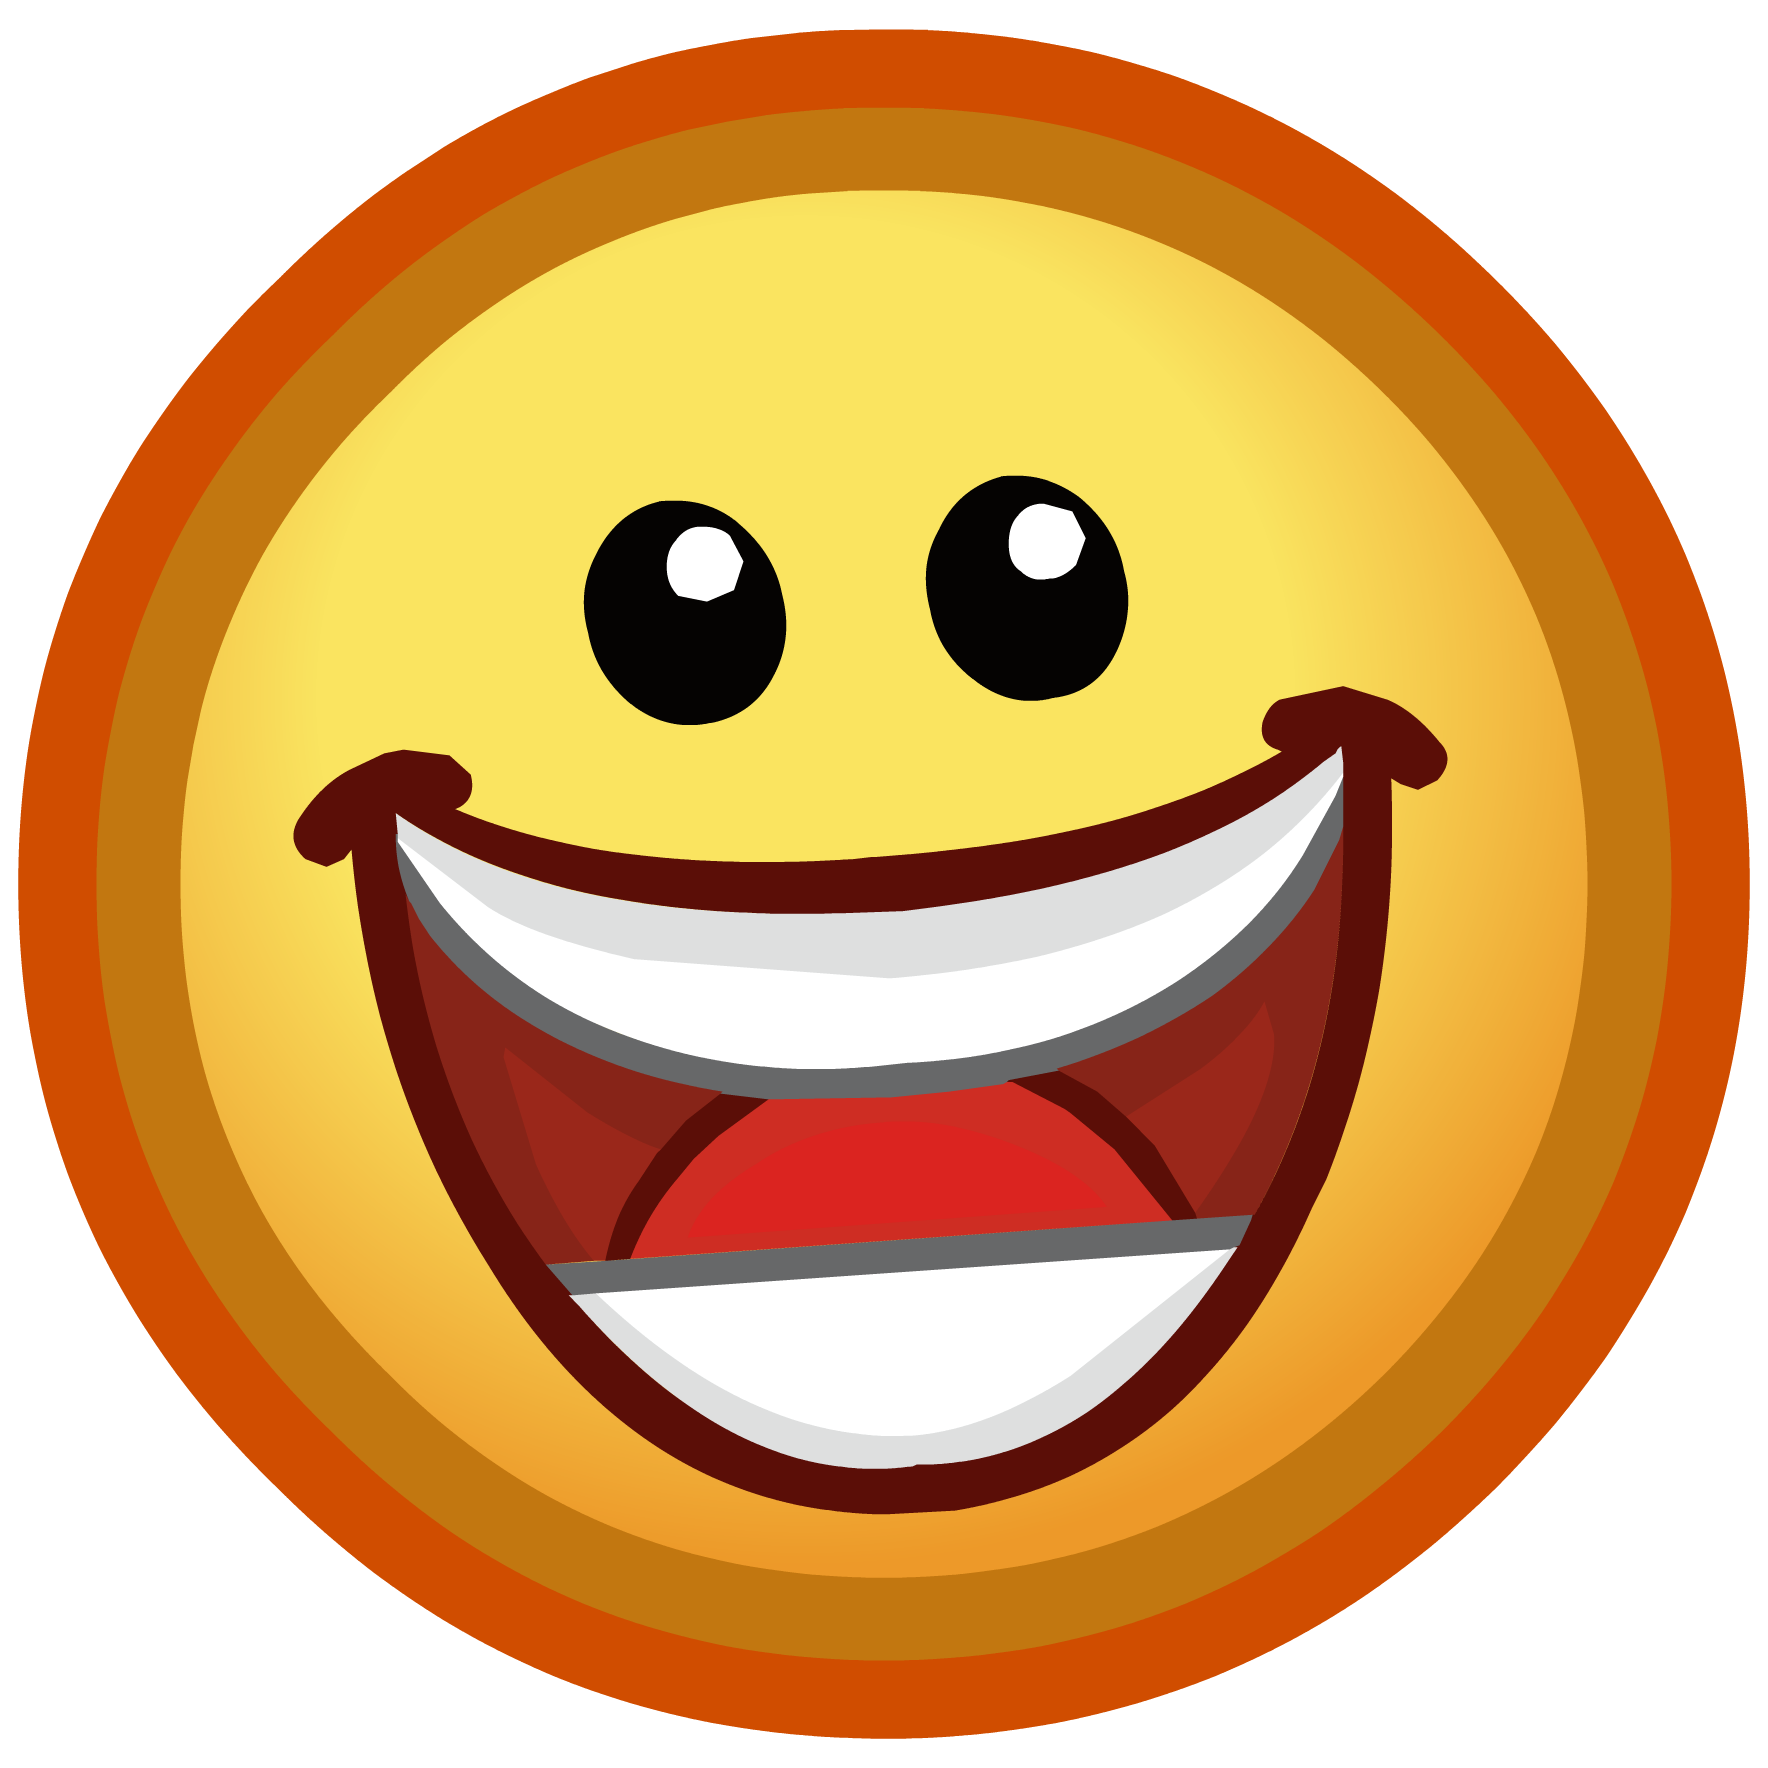 Happy face png. Image put on your